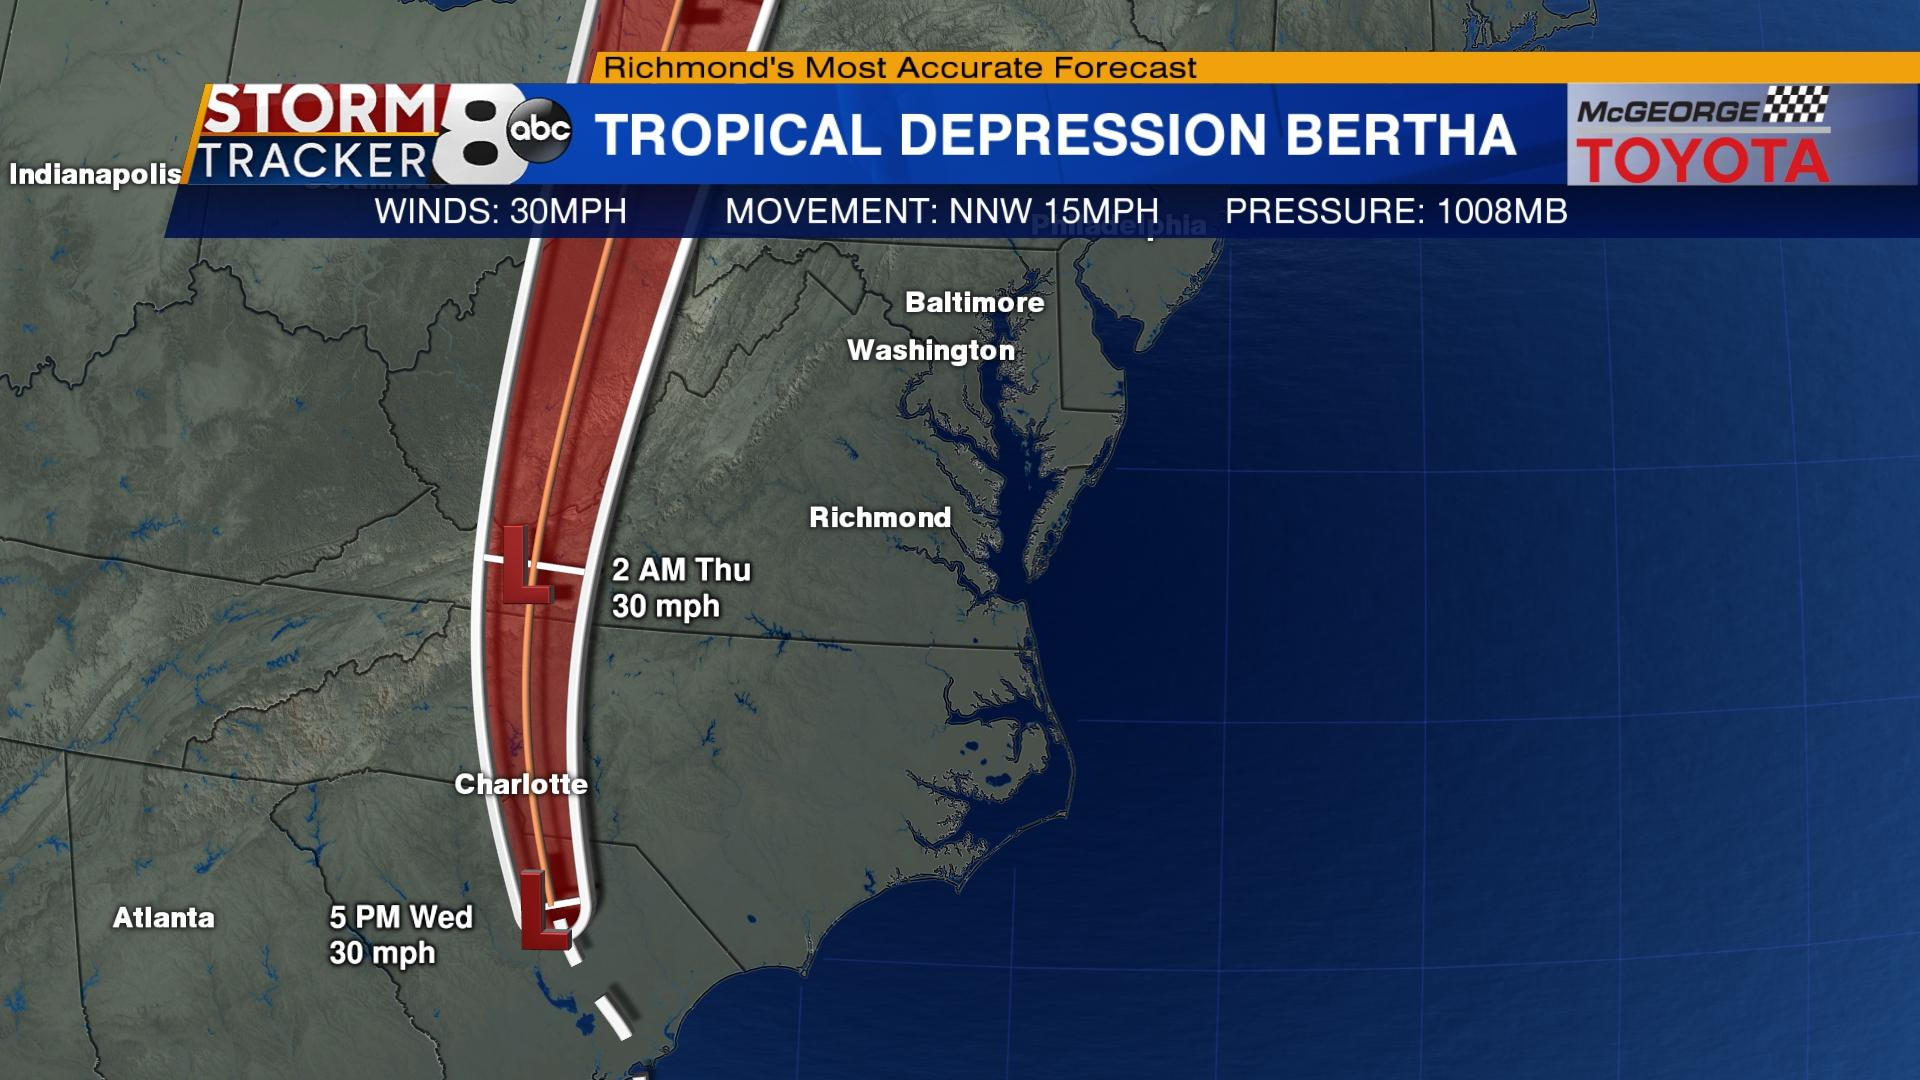 Tropical Depression Bertha